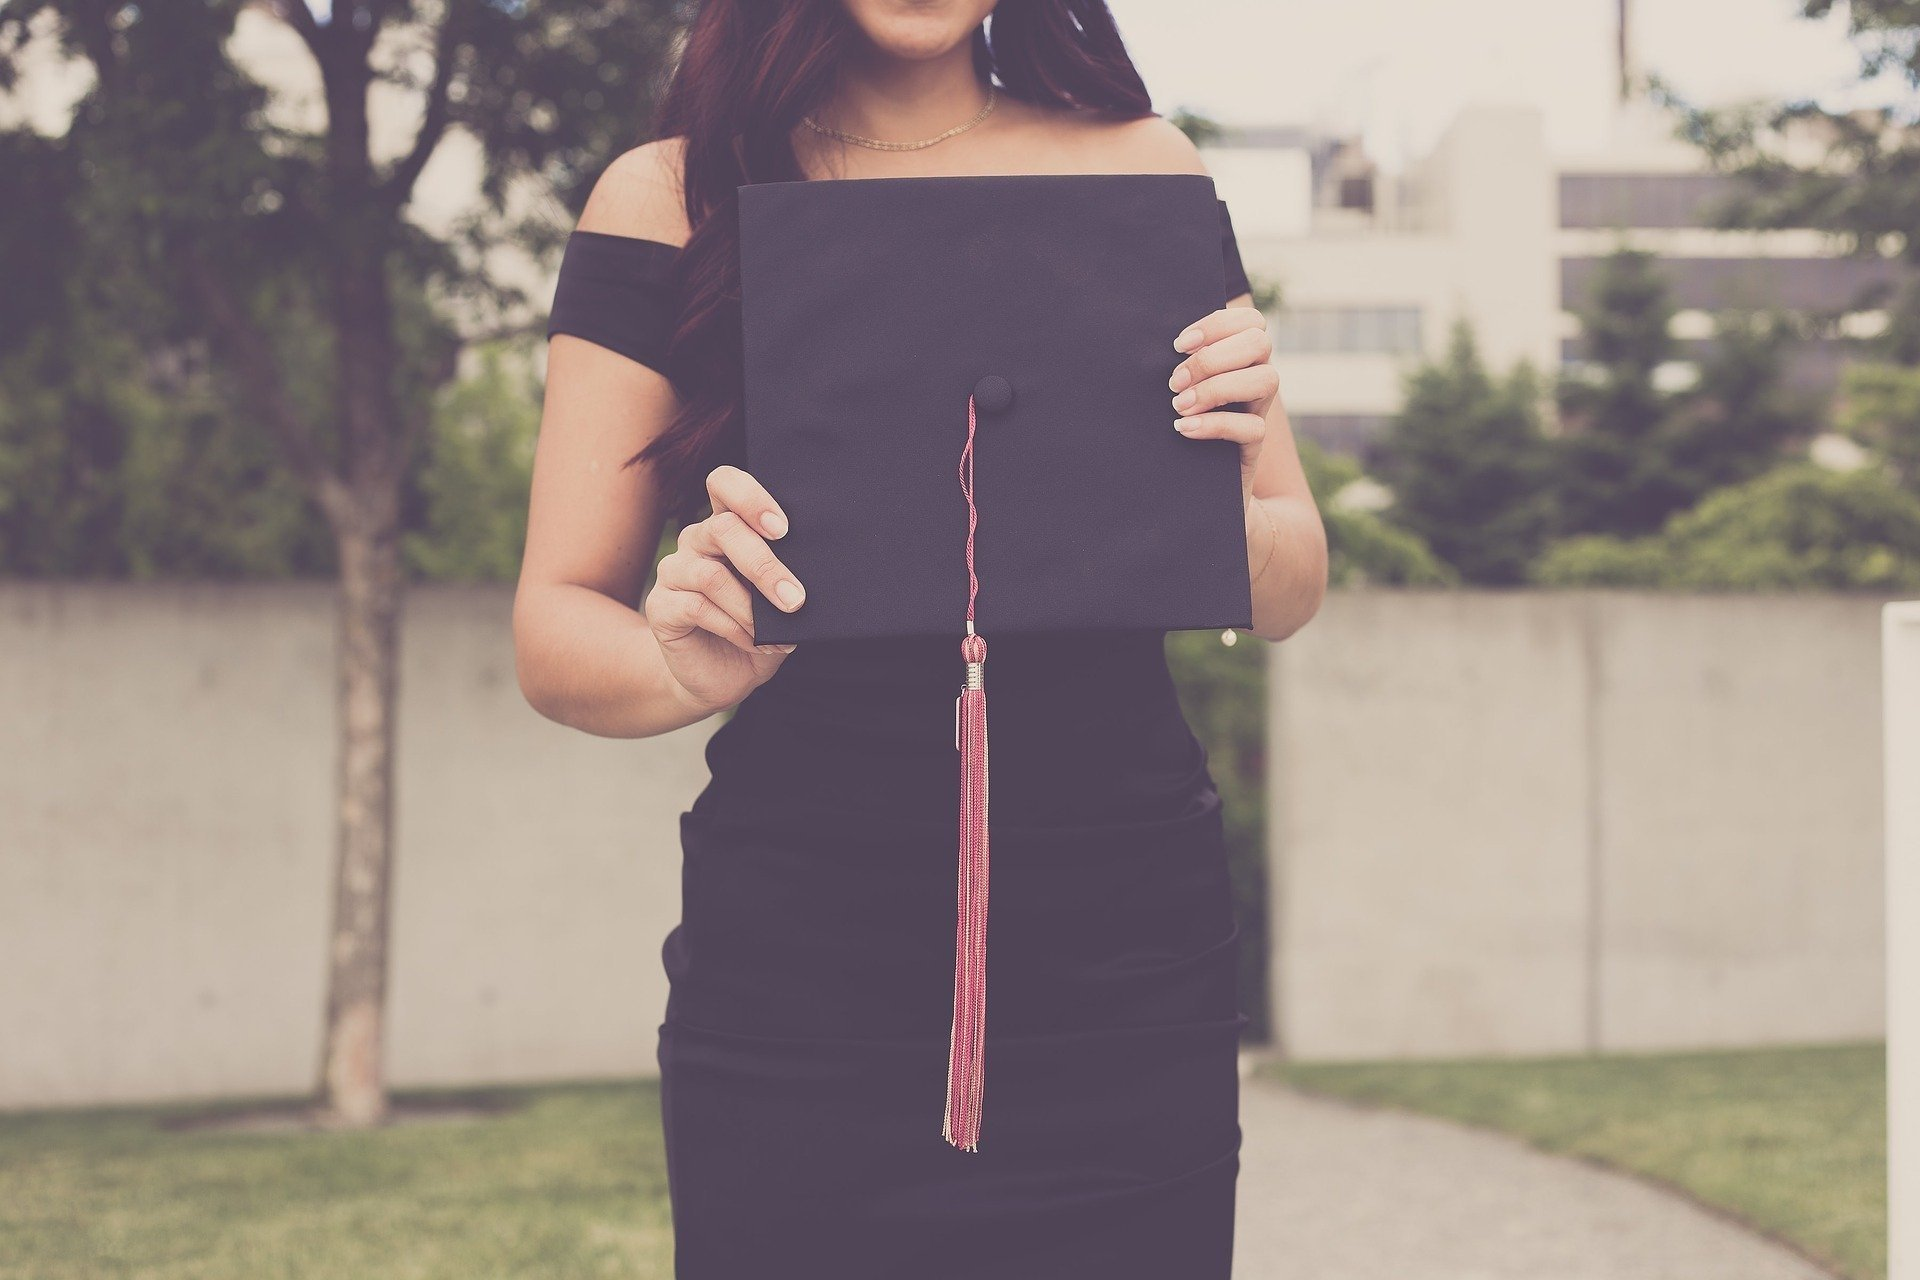 woman in black dress stands outside in front of a fence holding her graduation cap